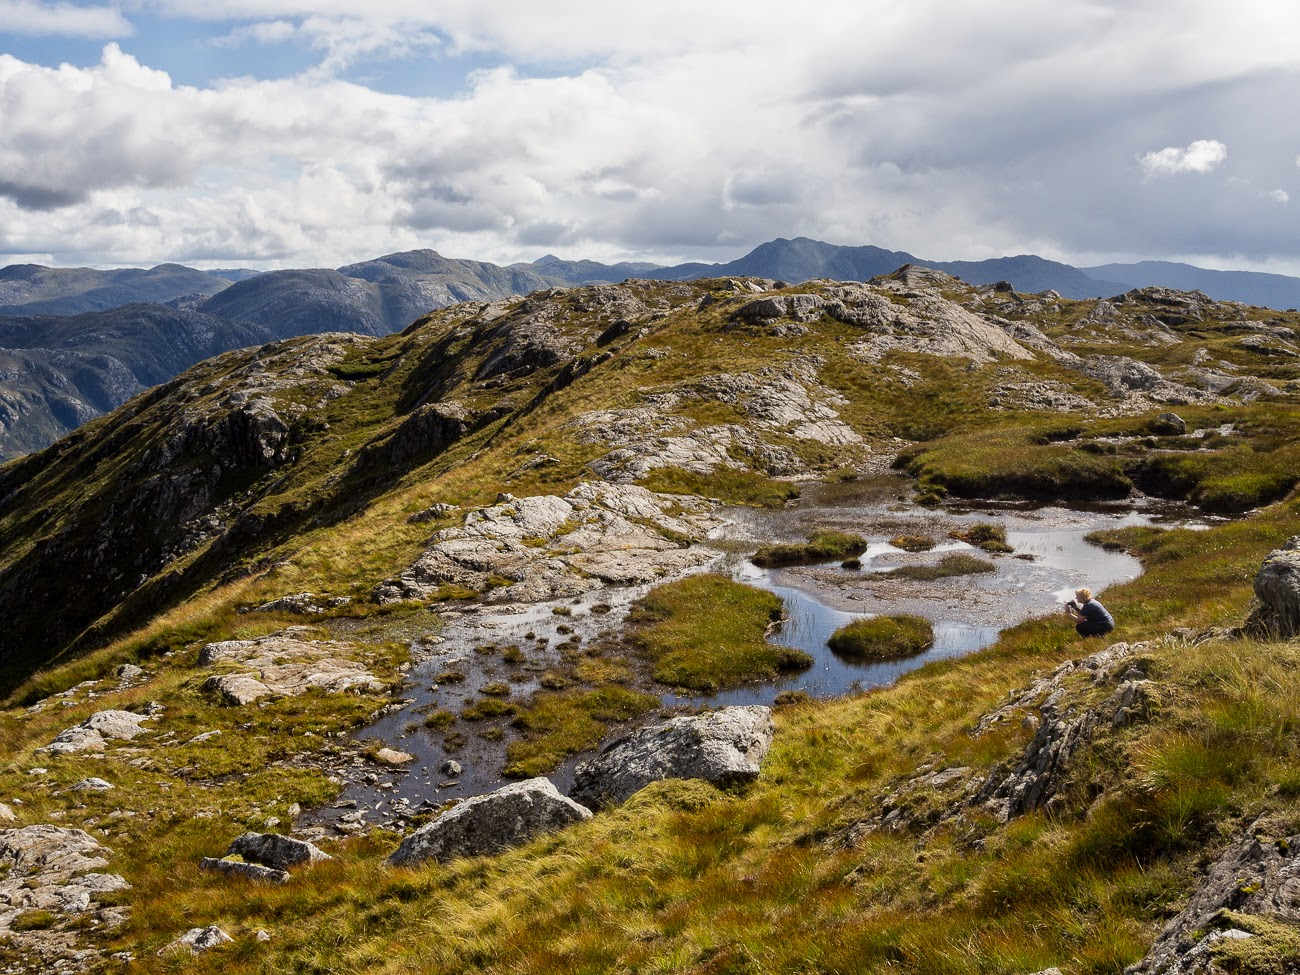 photo of Sgurr landscape with person to give some scale